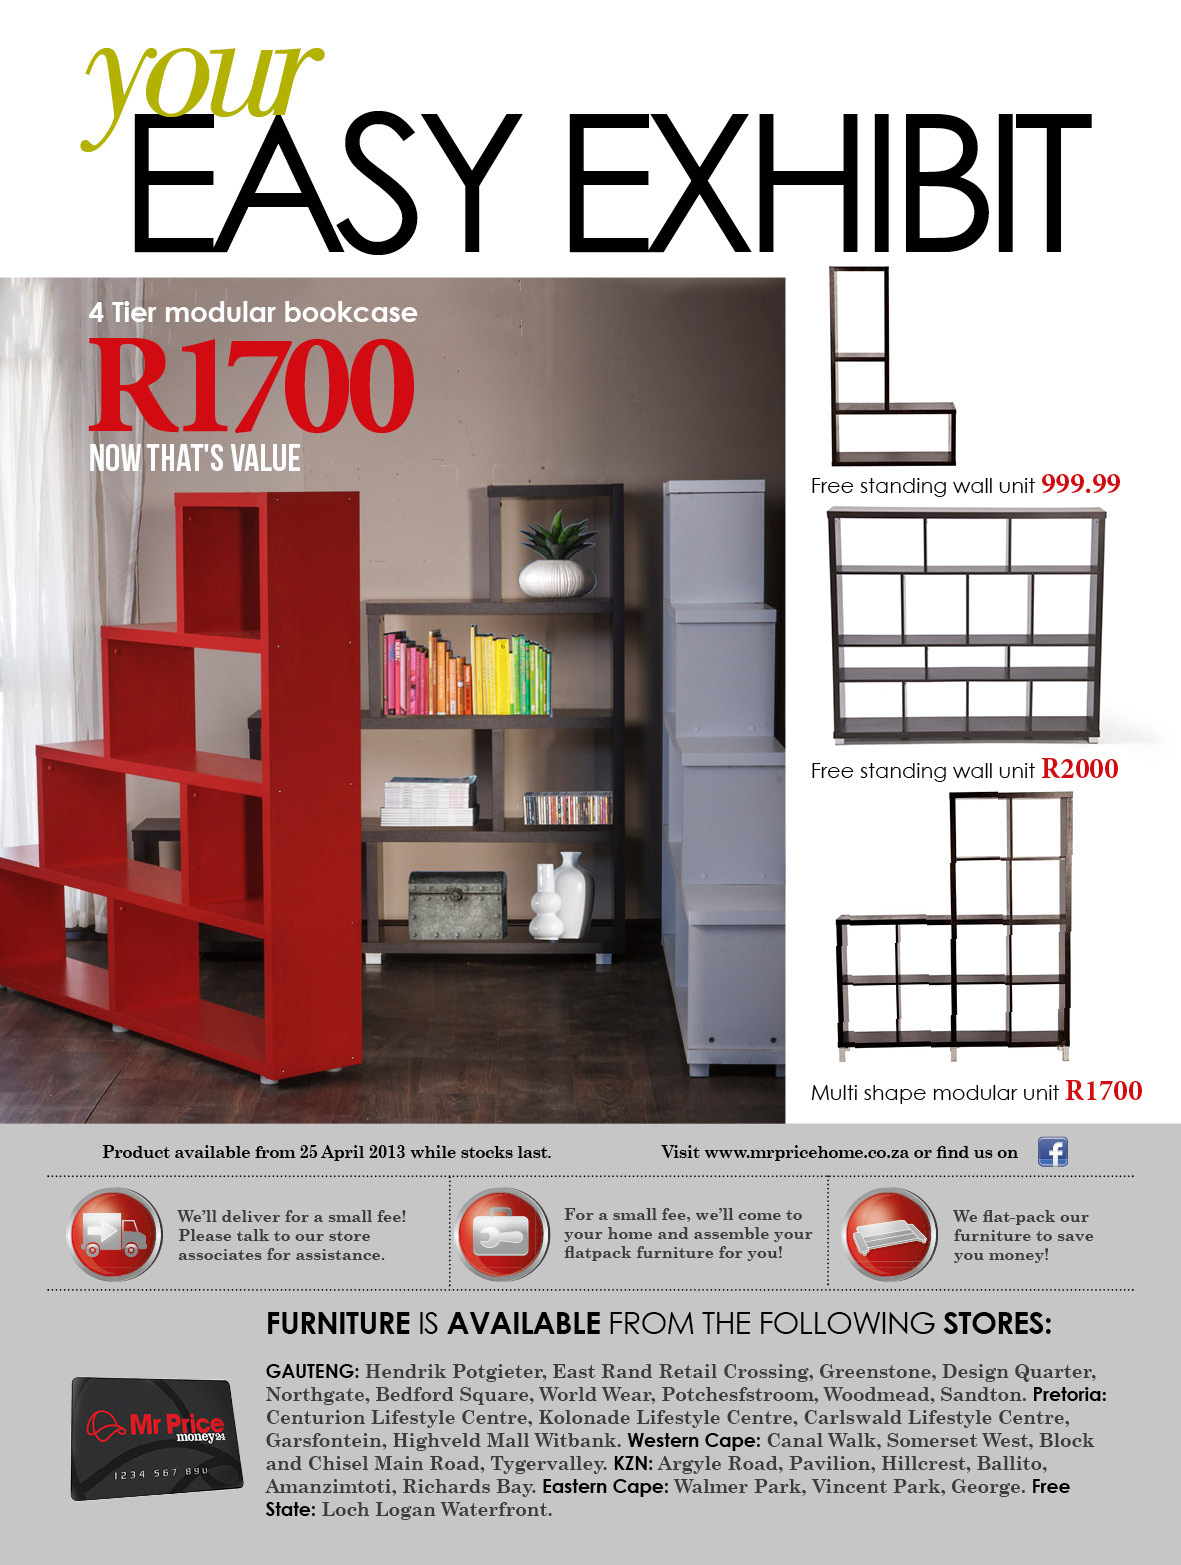 Mr Price Home Furniture Catalogue for  13  I worked on the layout and  design as a part of a team with my Creative Director and Art Director. Mr Price Home Furniture Catalogue  13 on Behance